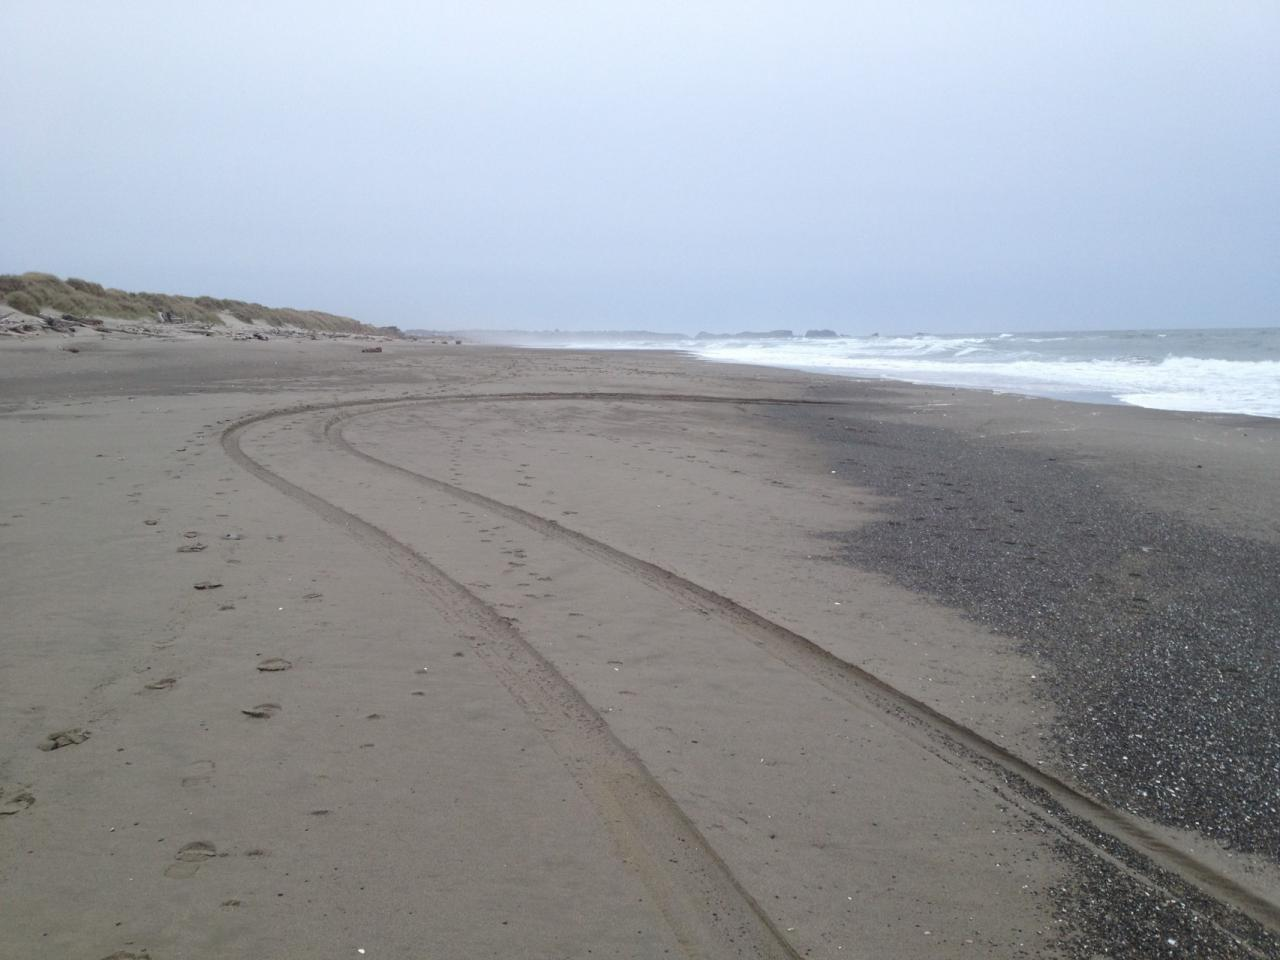 This photo was taken looking south on a part of the closed beach at Bullard's Beach.